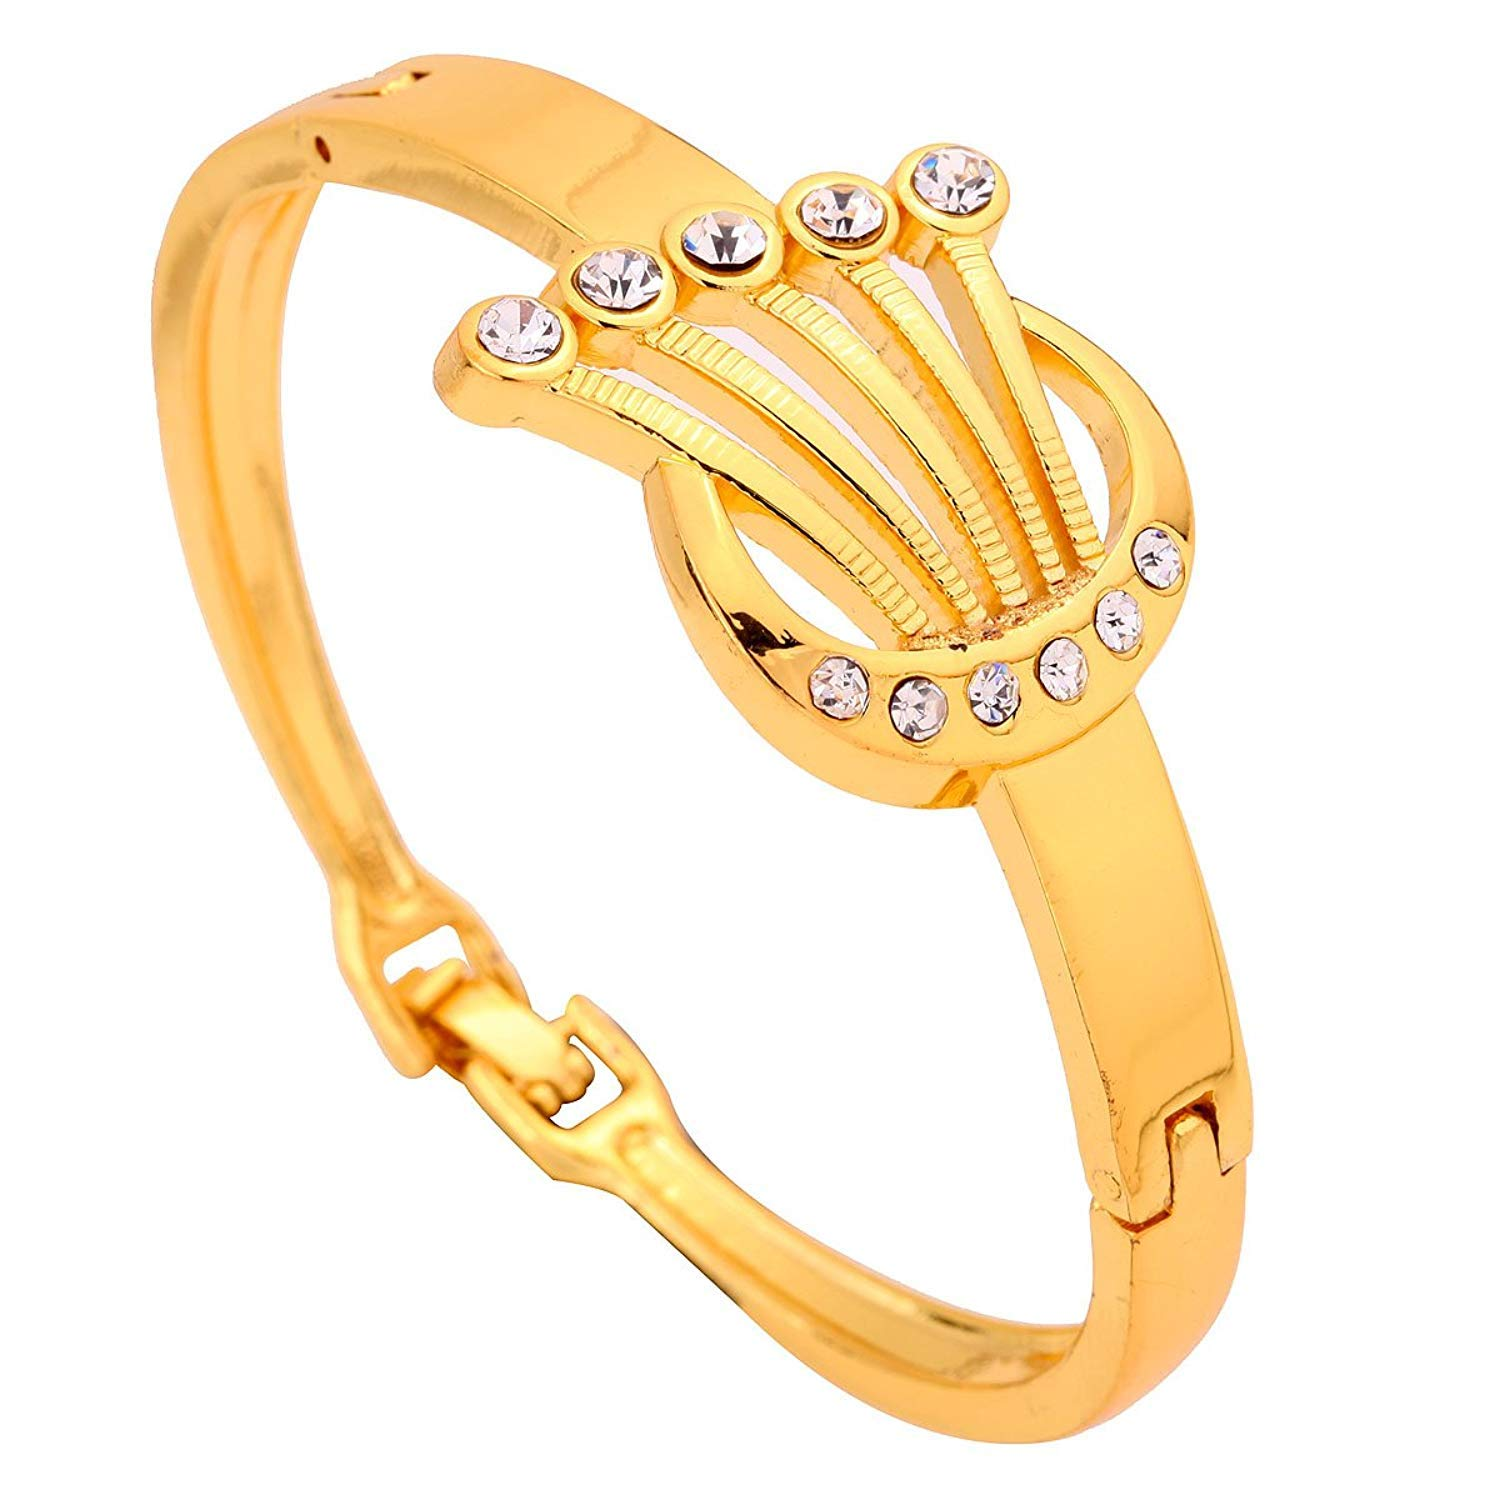 DVANIS Jewelry Charms Hollow Design Crystal Inlay Gold Plated Bracelet Bangle Bdangle Bangle Women